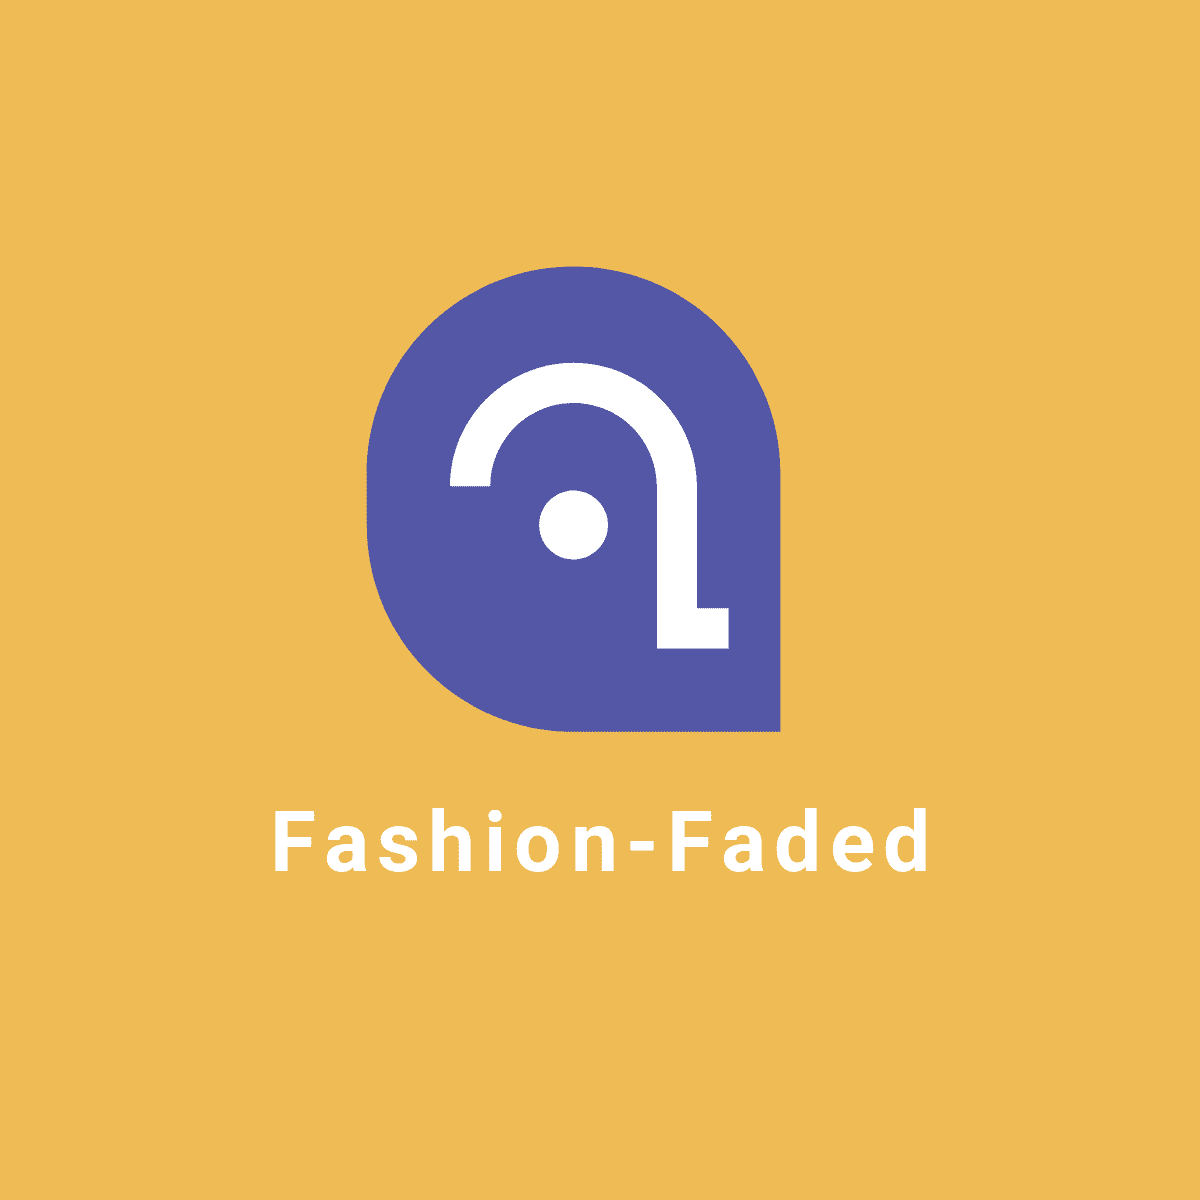 Fashion-Faded